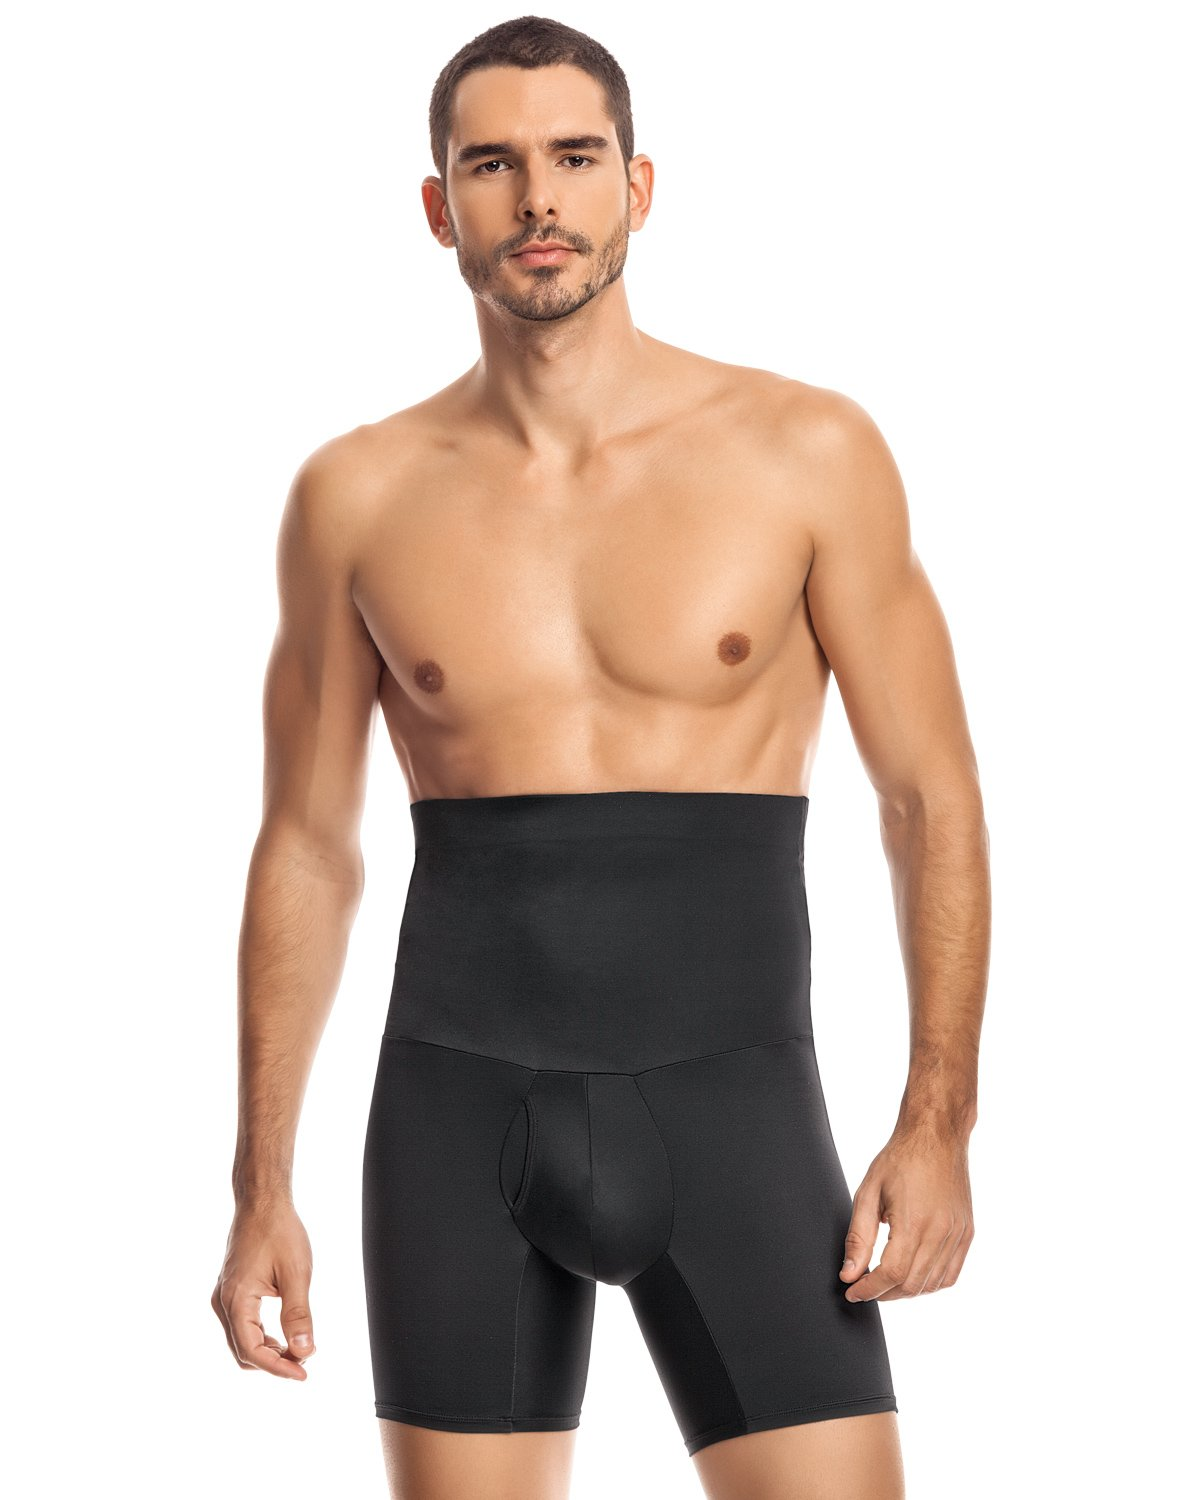 Leo Men's High Waist Slimming Tummy Abs Shaper with Boxer Brief,Black,Large